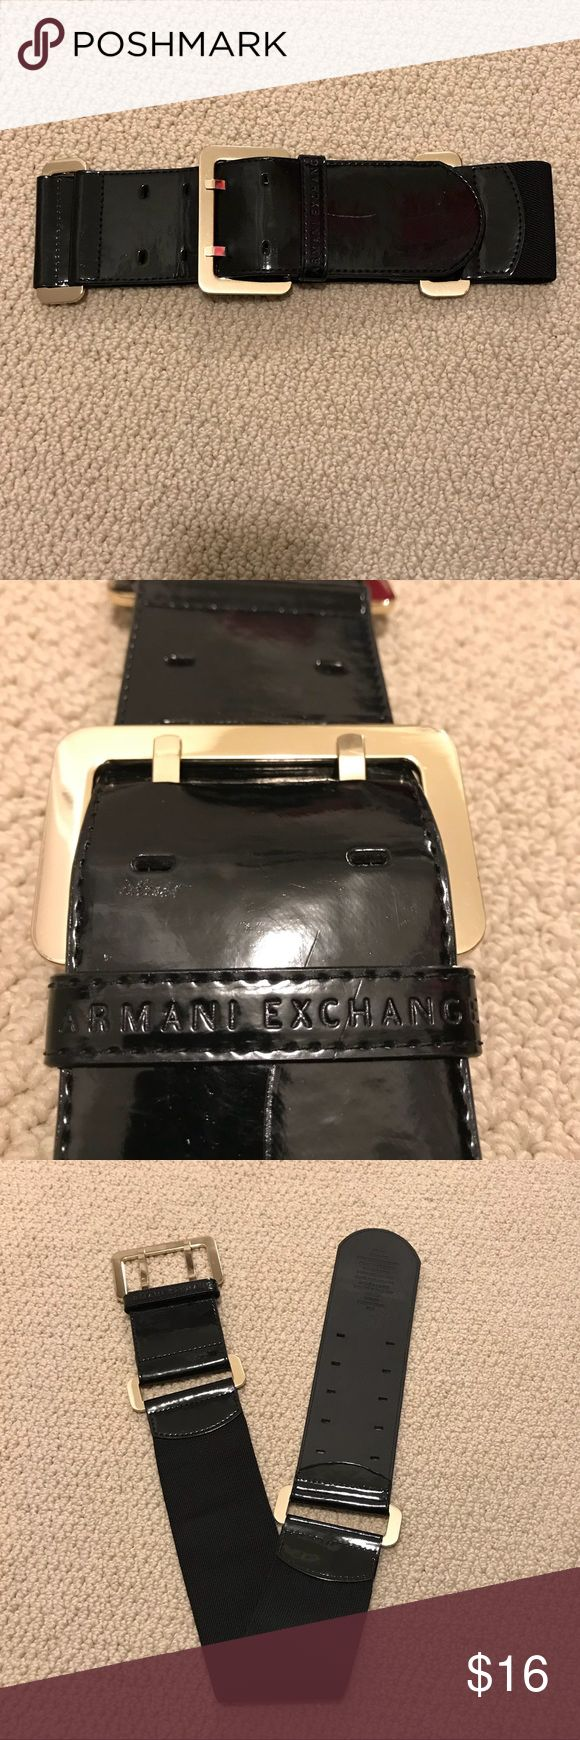 Armani Exchange Liquid Leather Belt Three inches thick to layer over a dress or cardigan for an hourglass chic look! Shiny gold buckle and accenting on liquid leather. Smoke free home. Sold to raise money for family member with cancer ❤️ A/X Armani Exchange Accessories Belts